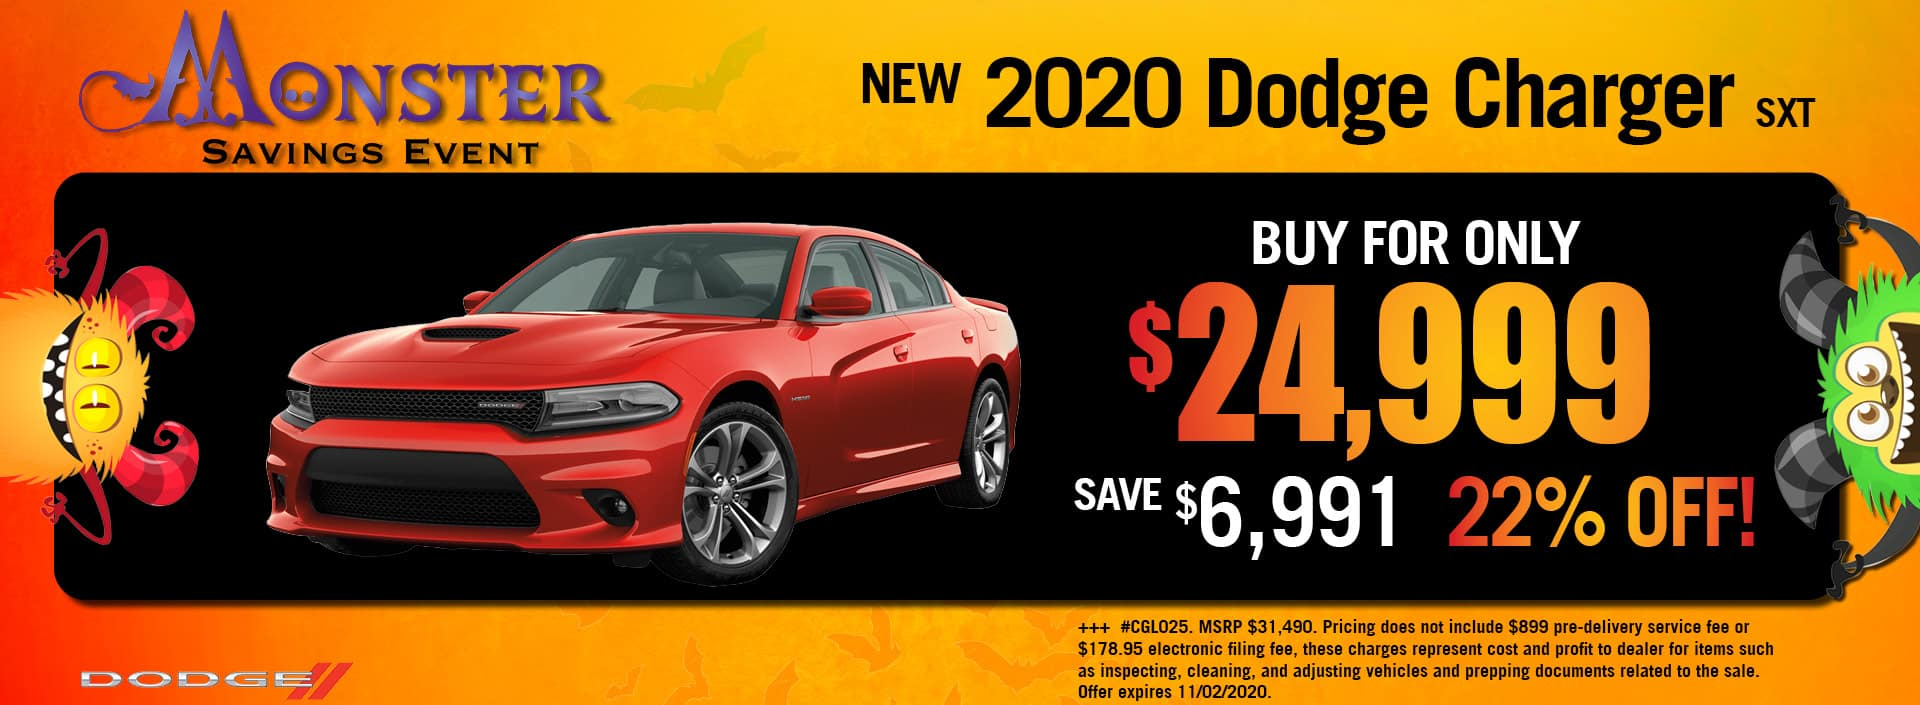 2020 Charger-24999